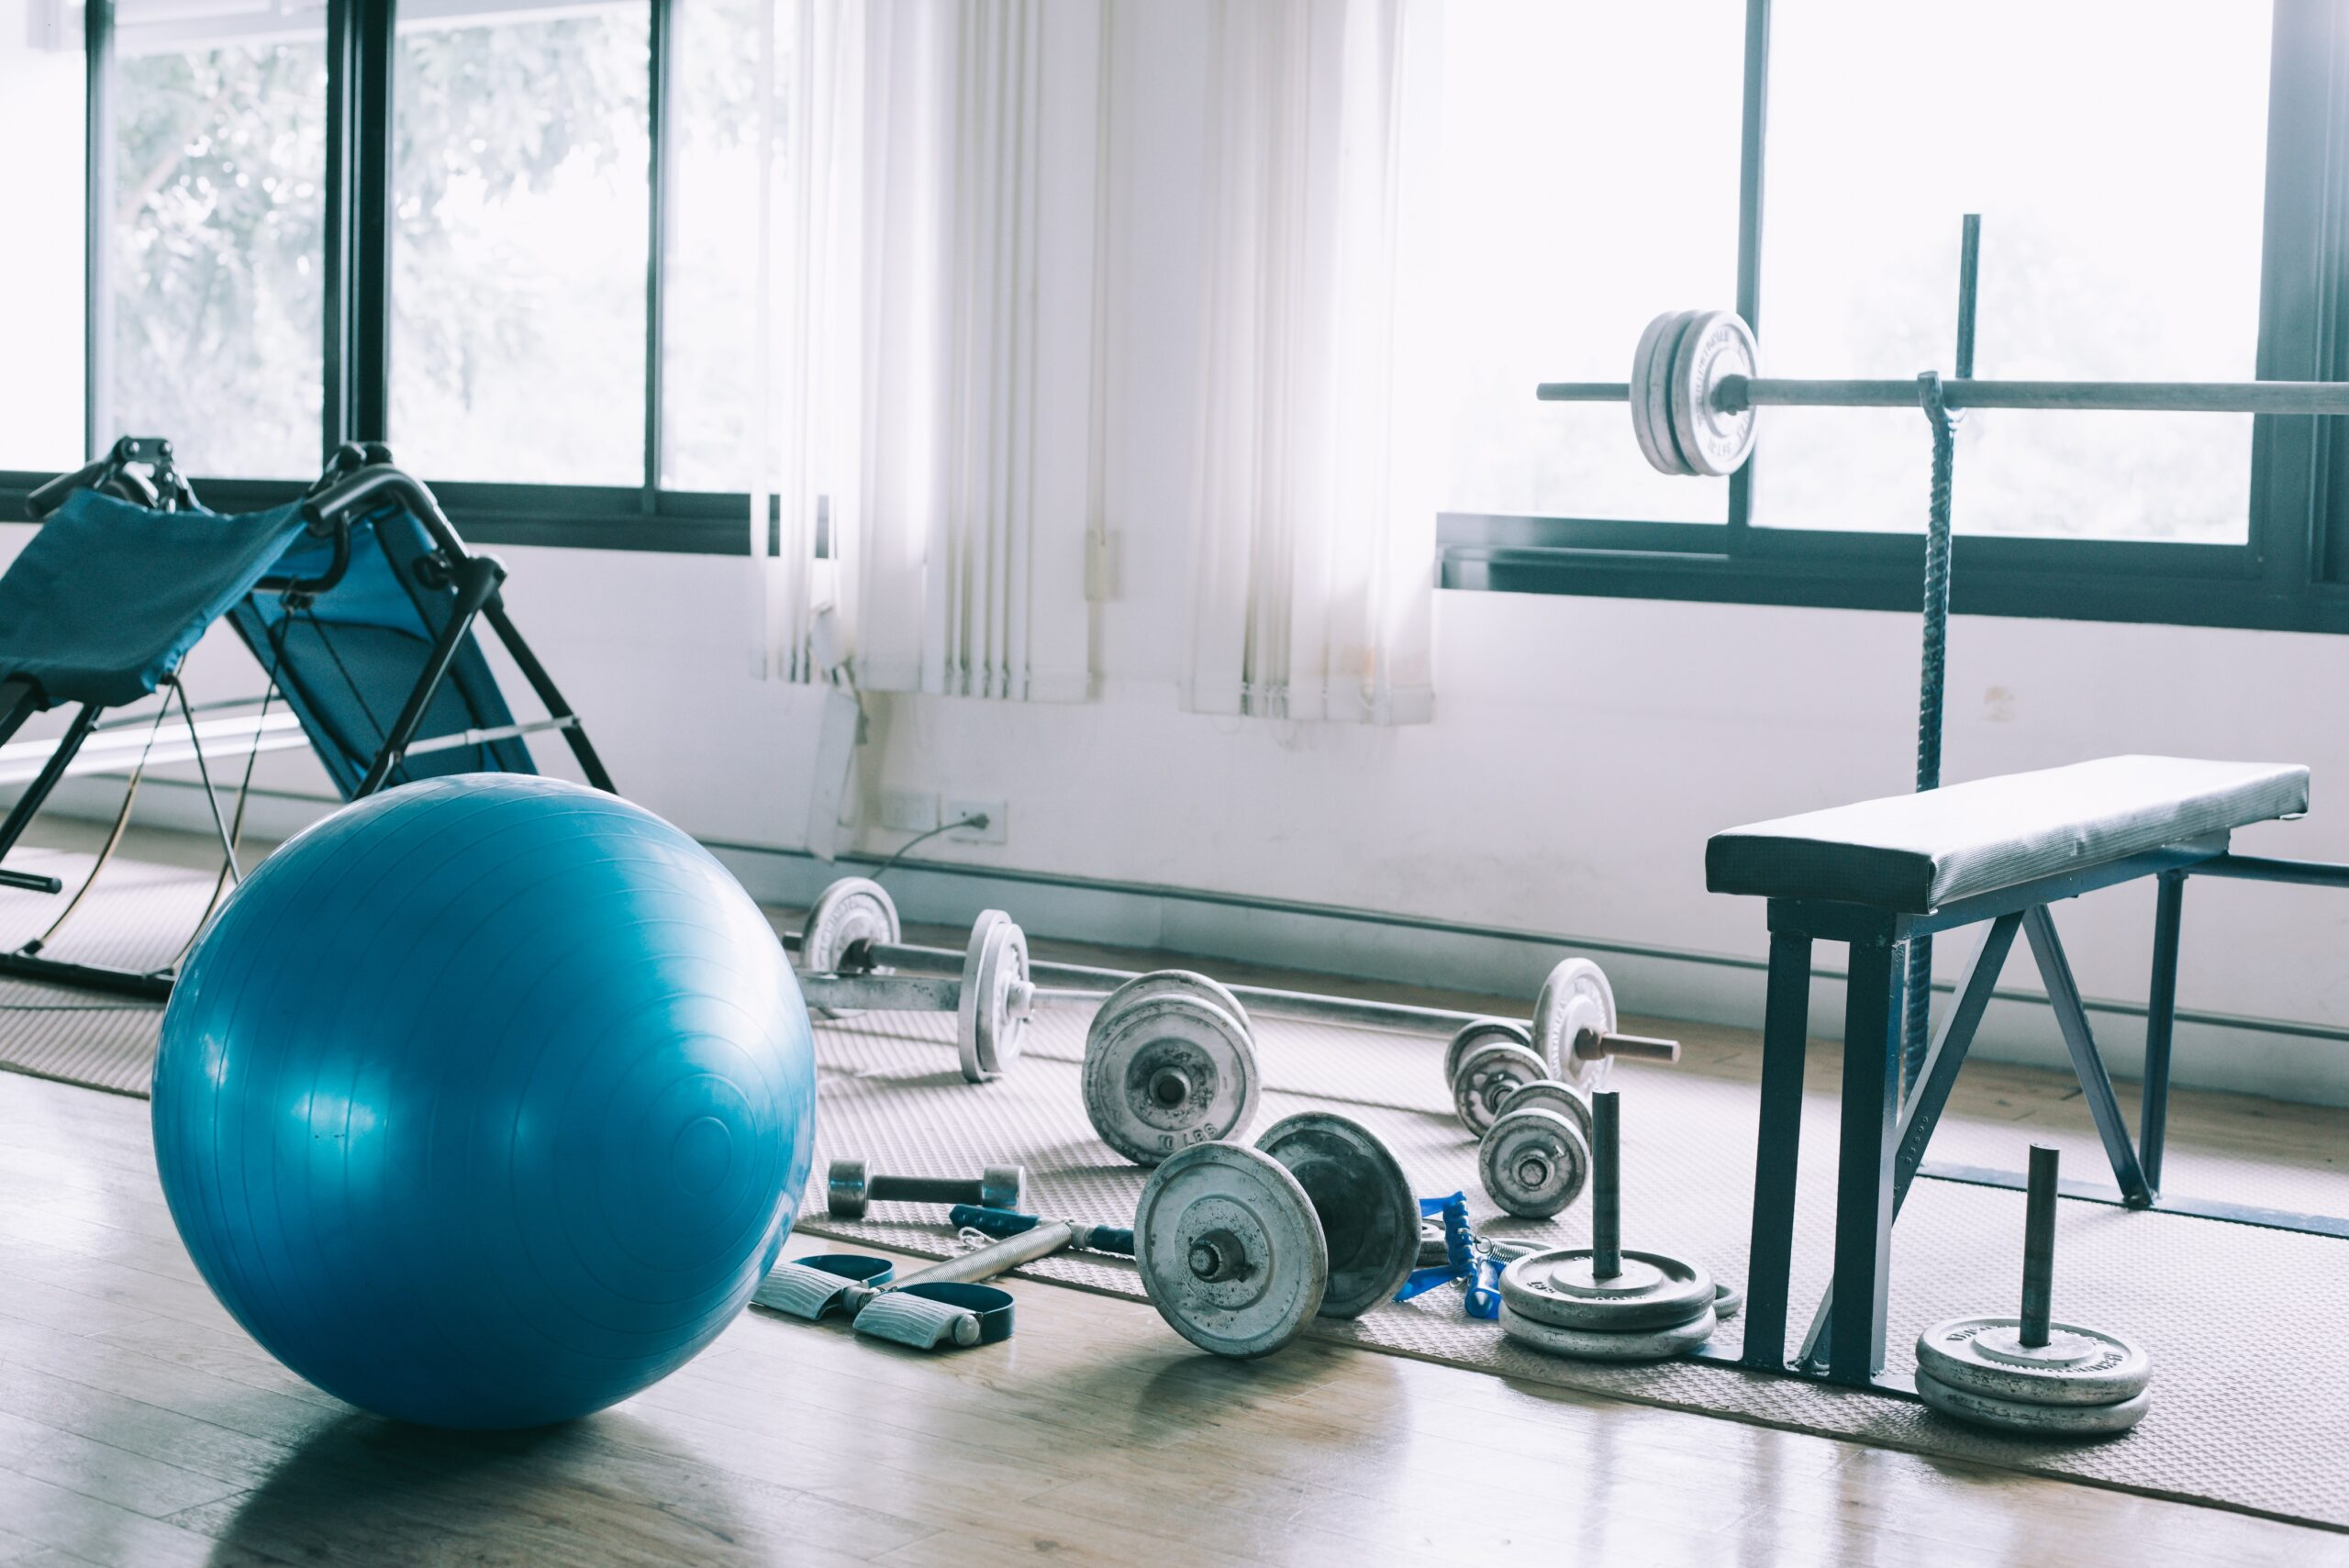 A home gym set up including dumbbells, weight bench and blue medicine ball on a hardwood floor